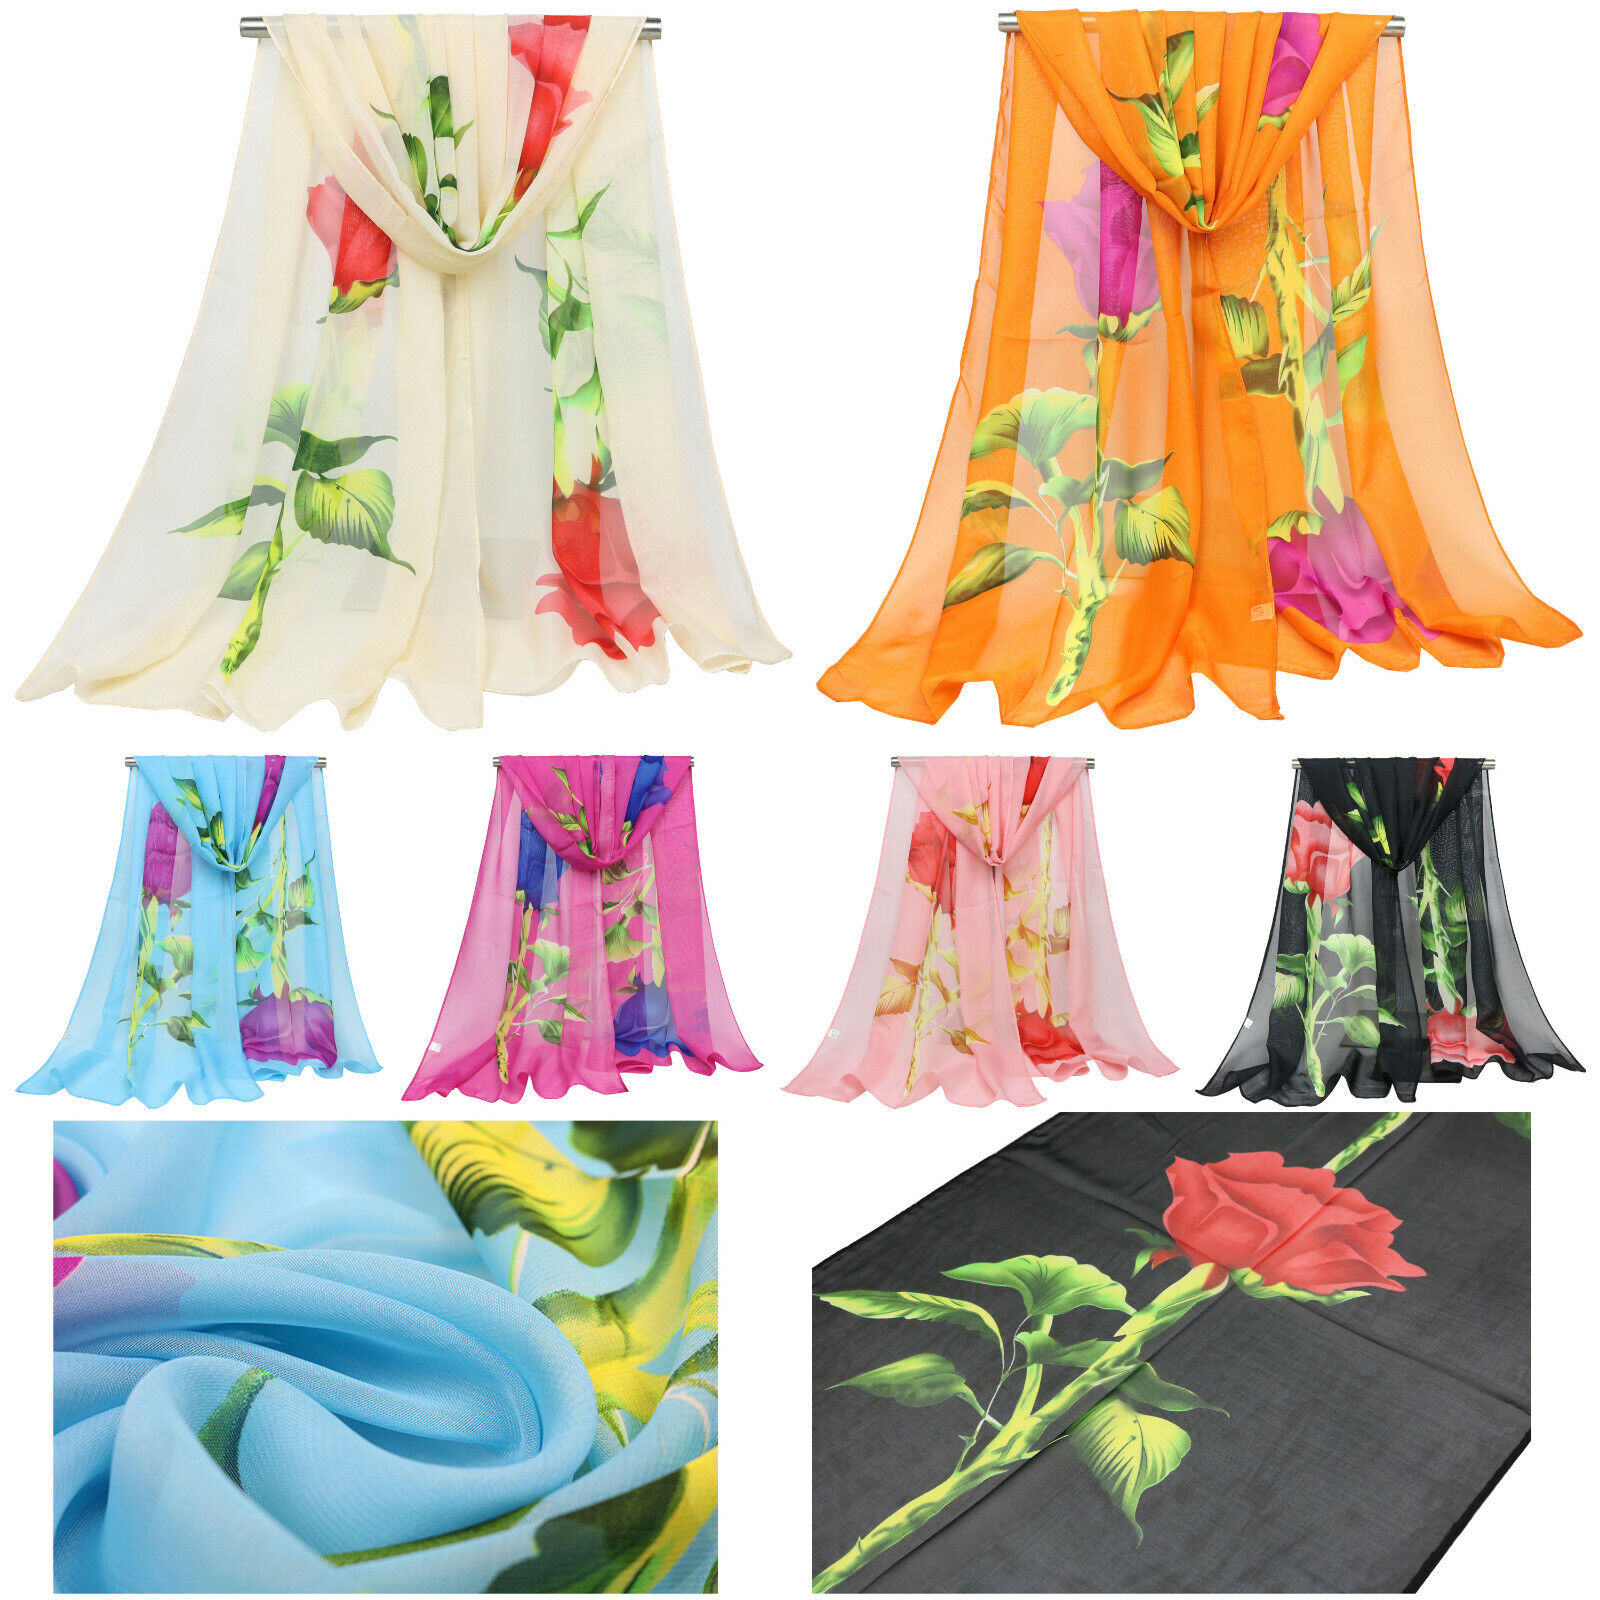 Women's Floral Flower Natural Dye Chiffon Lightweight Beach Wrap Fashion Scarf Clothing, Shoes & Accessories